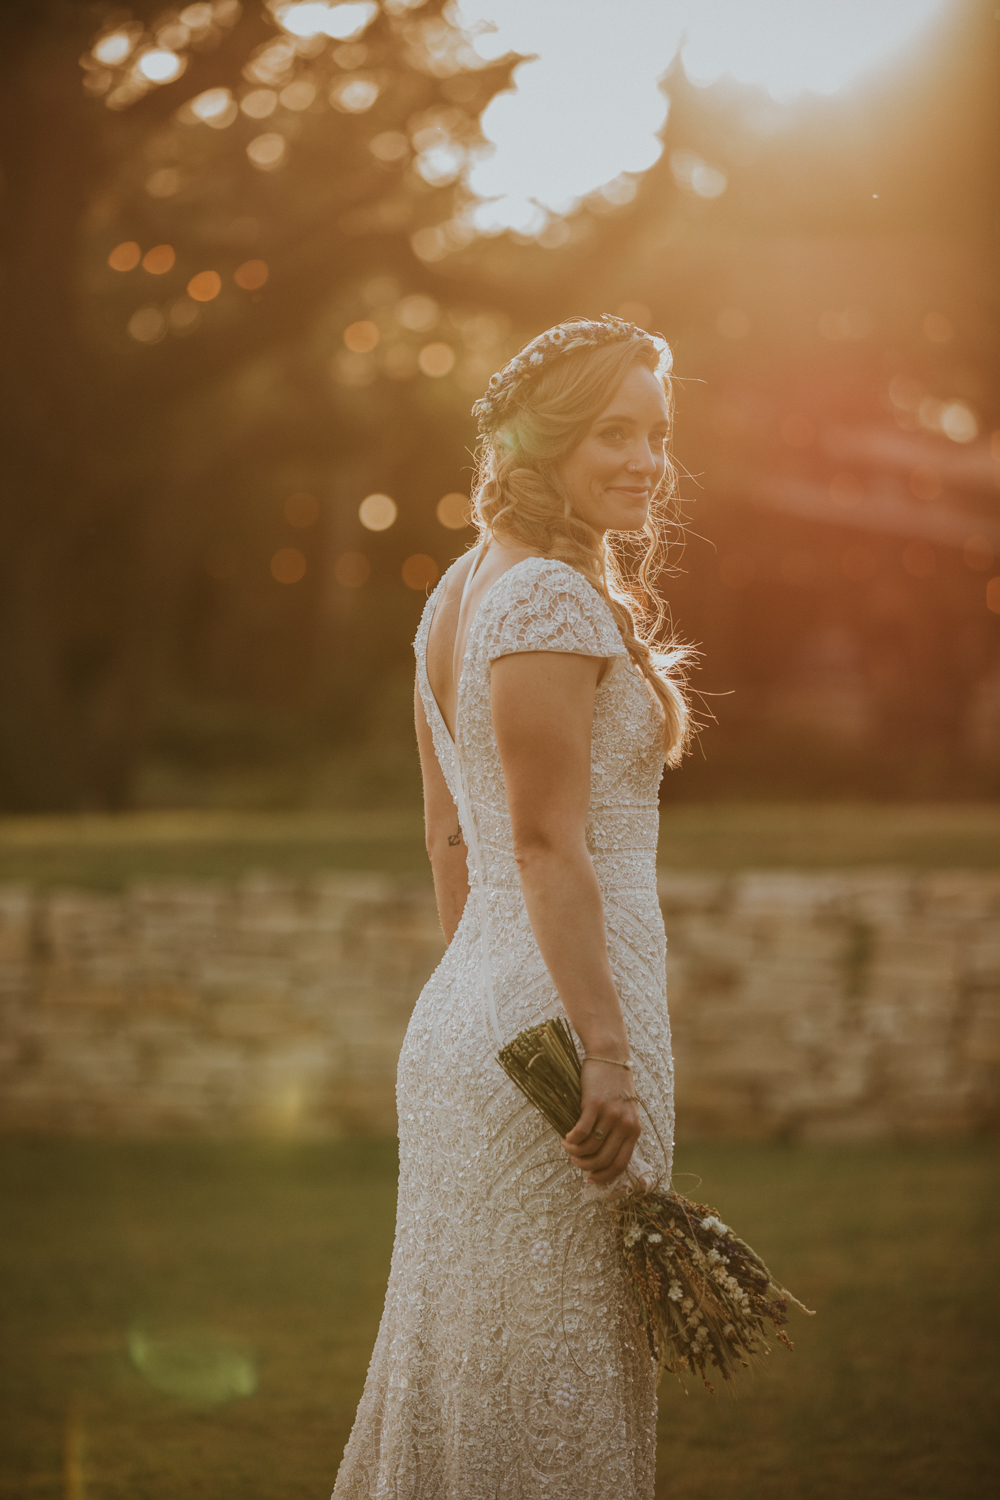 Rustic Ranch Wedding Photography - Diana Ascarrunz Photography - Austin Wedding Photographer-55.jpg